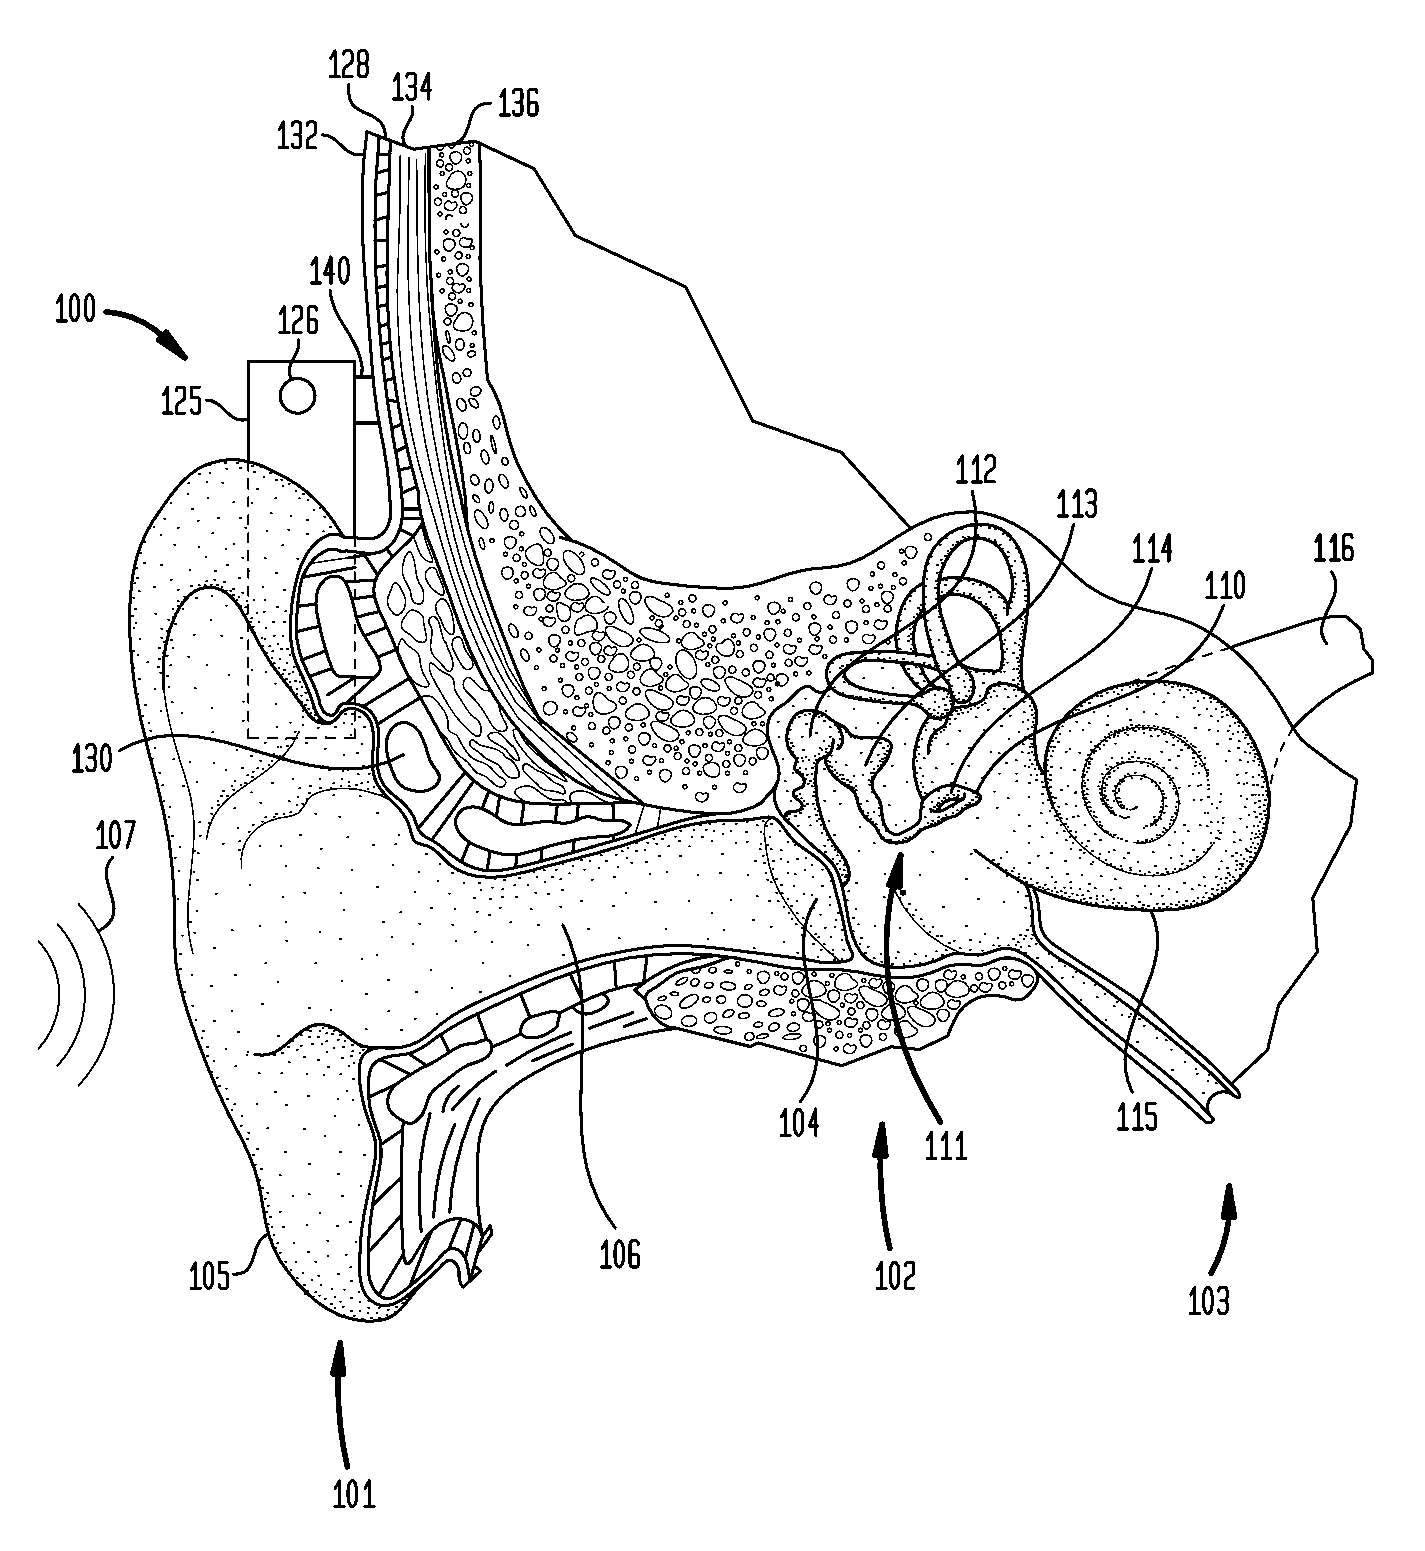 Patent Us8737649 Bone Conduction Device With A User Interface Hearing Aid Selection And Circuitry Options Drawing